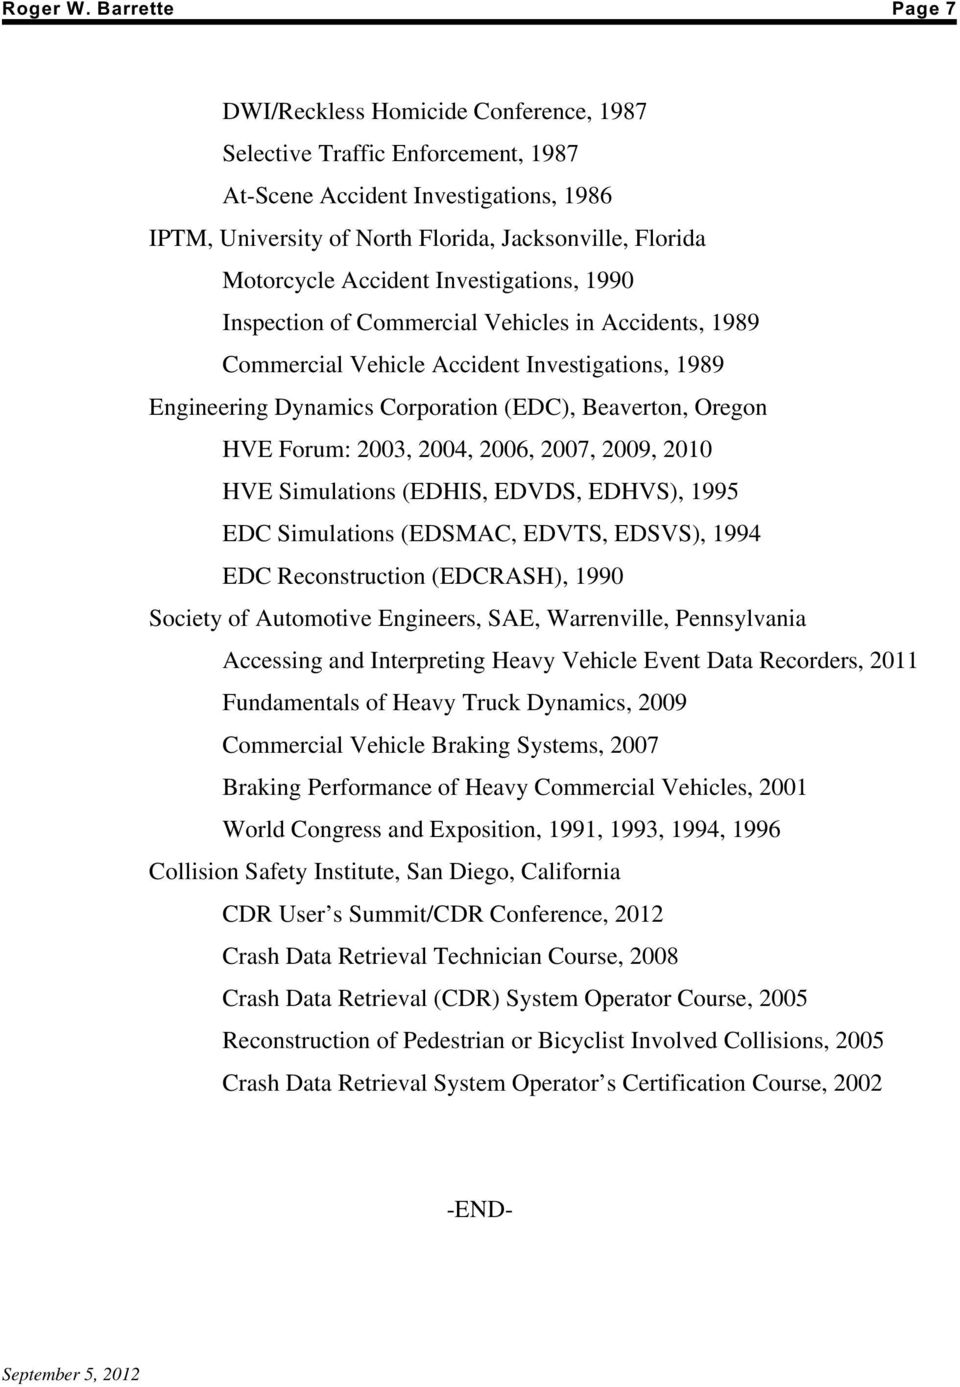 Accident Investigations, 1990 Inspection of Commercial Vehicles in Accidents, 1989 Commercial Vehicle Accident Investigations, 1989 Engineering Dynamics Corporation (EDC), Beaverton, Oregon HVE